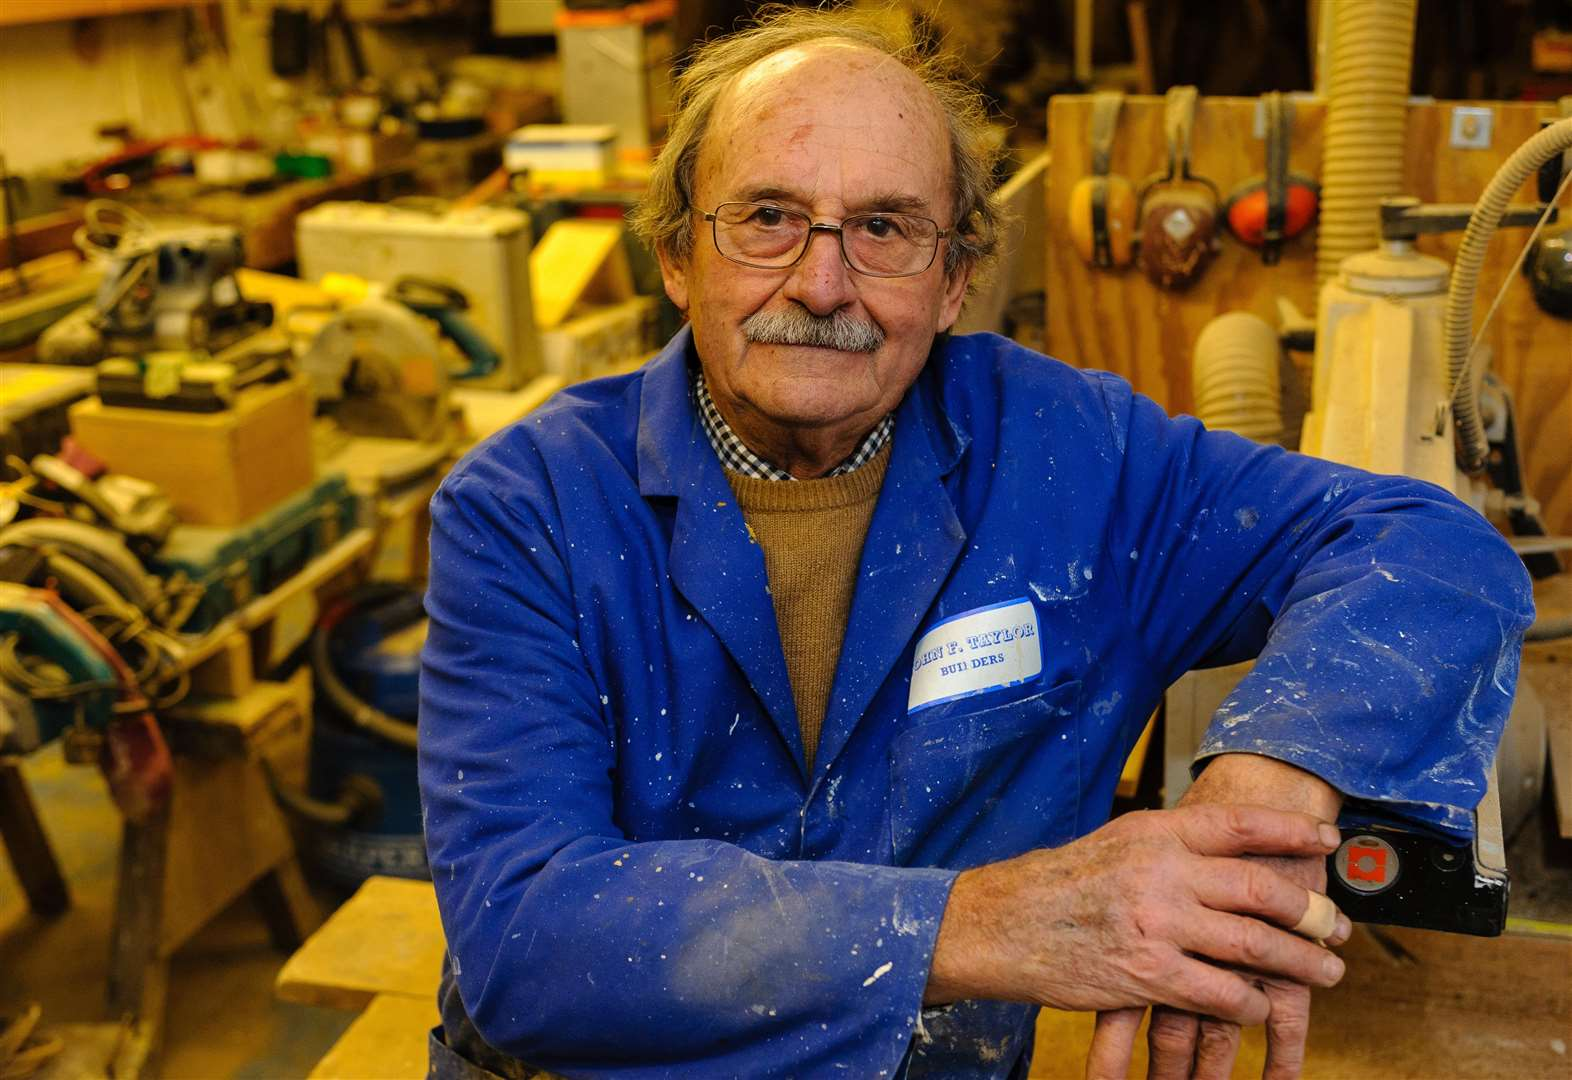 Master builder and skilled craftsman retires, aged 76